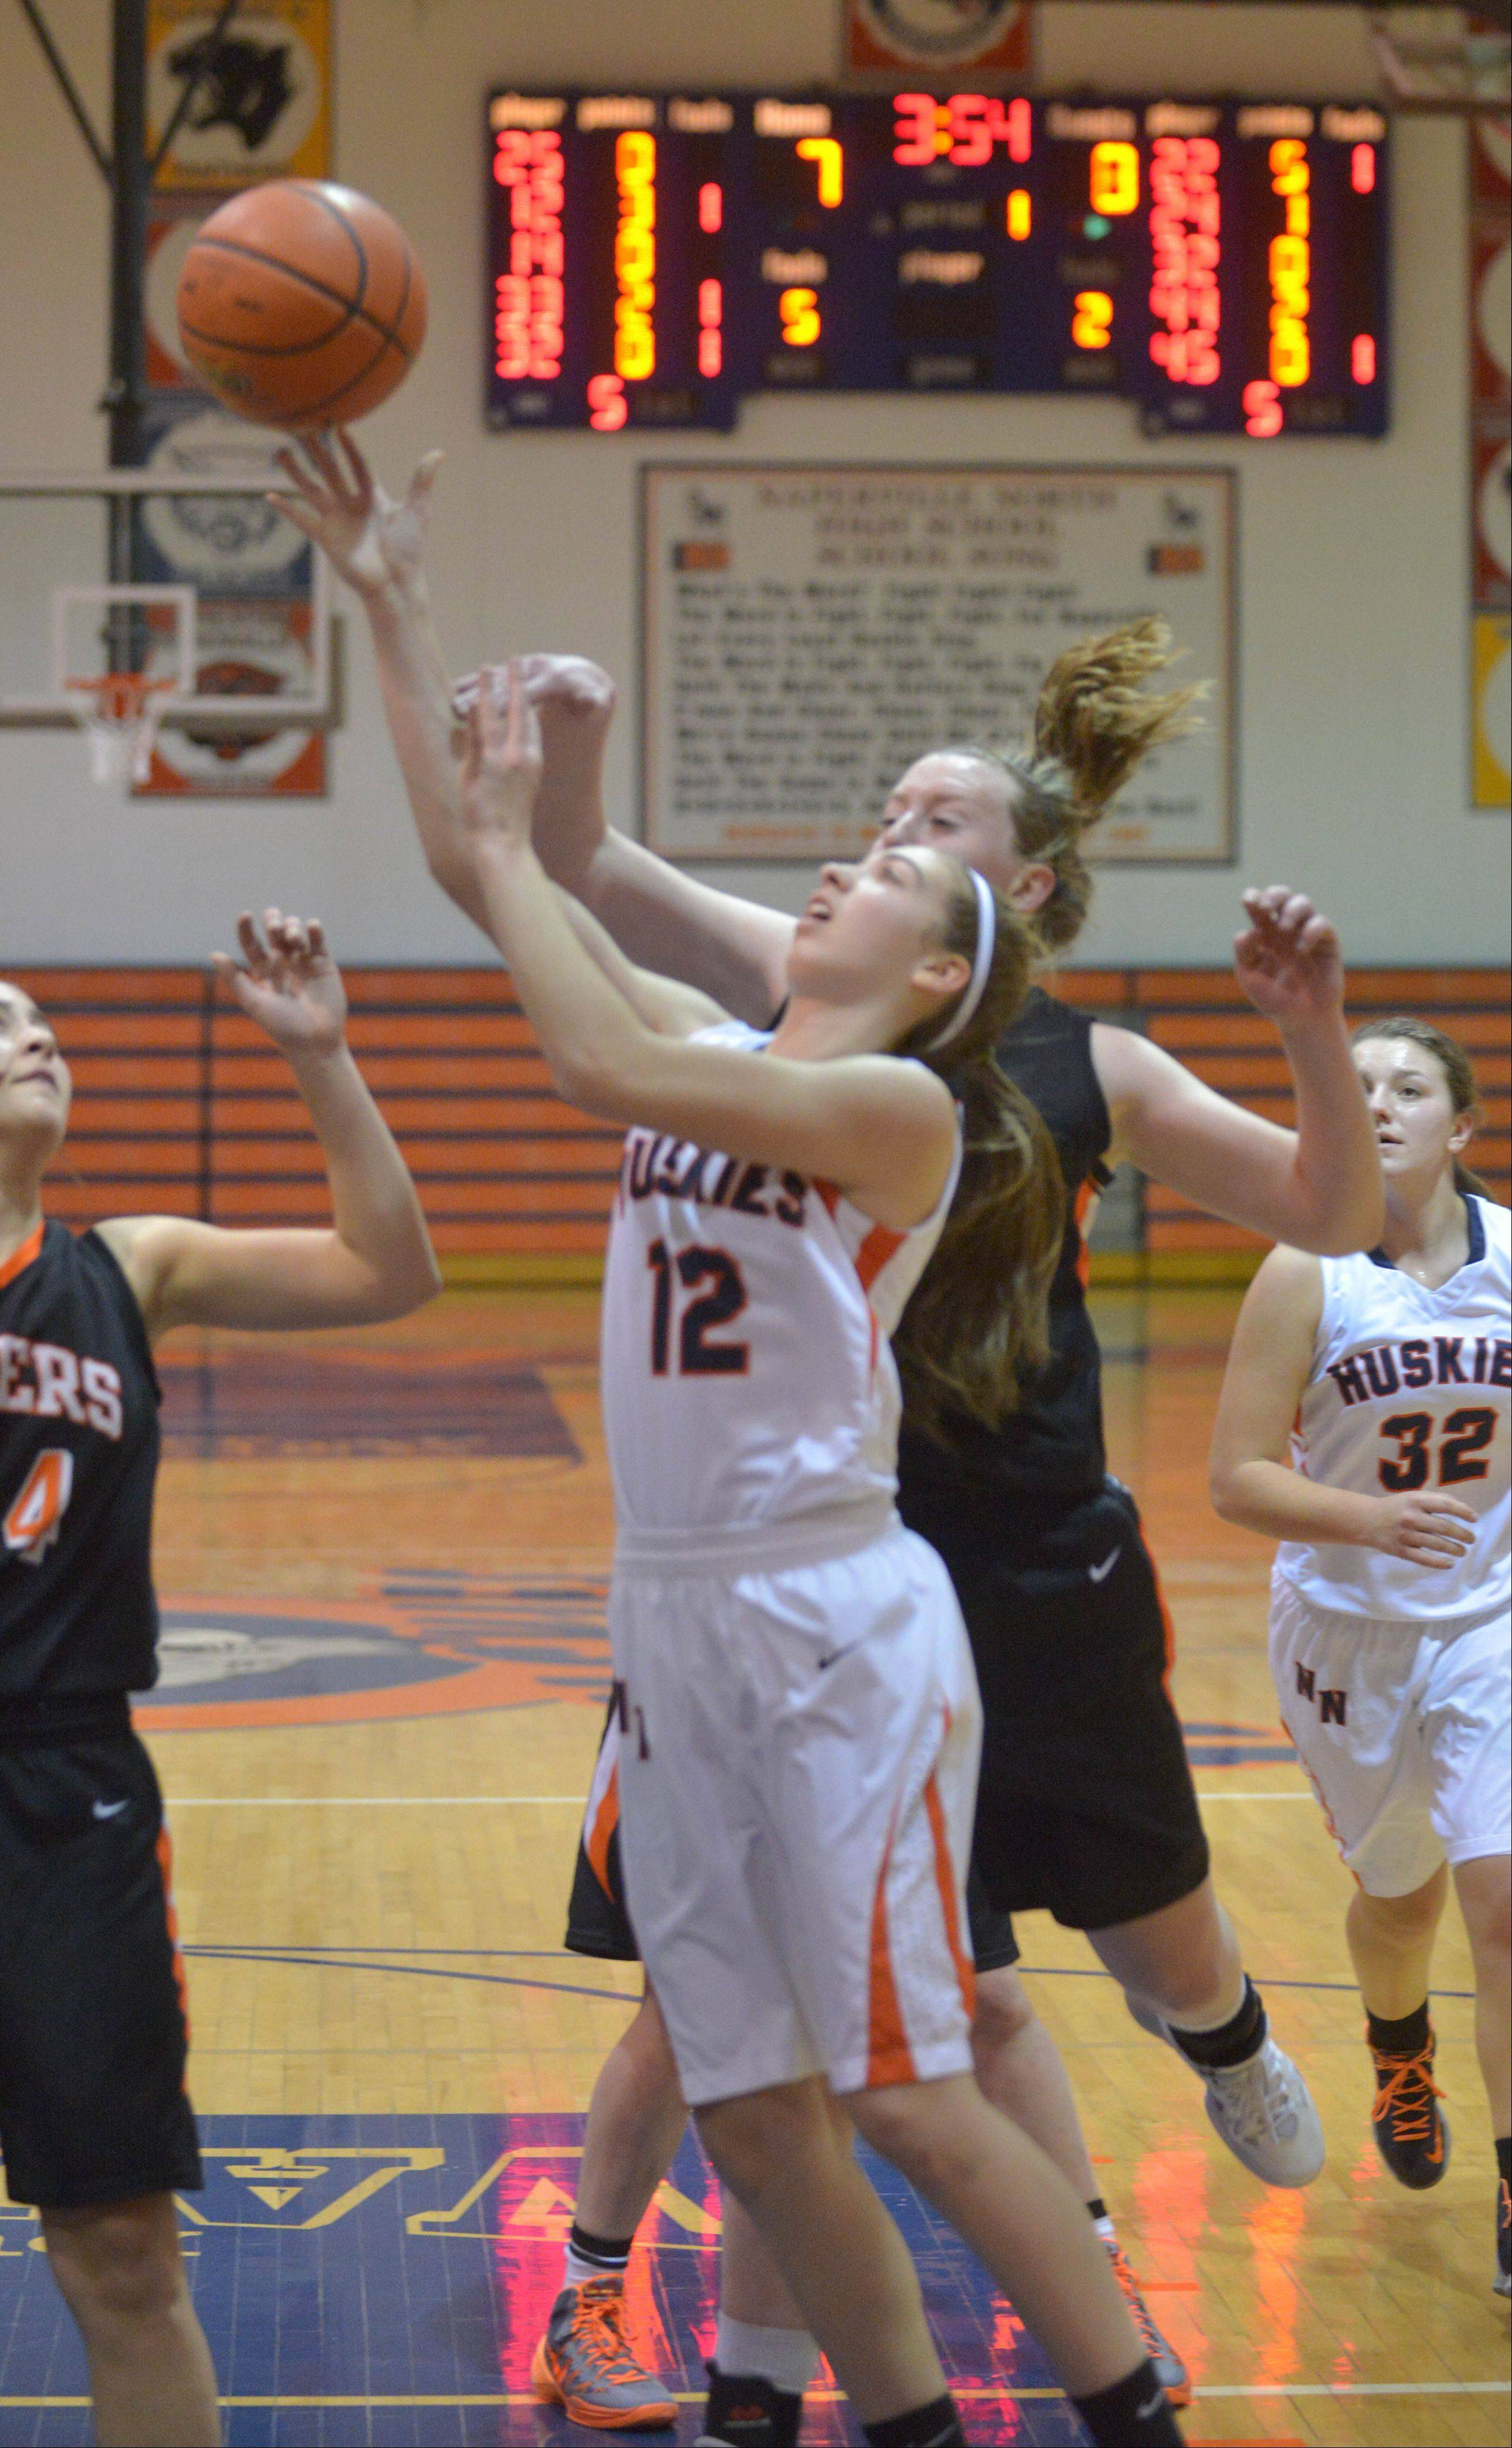 Laurel Pereira of Naperville North takes one to the net during the Wheaton Warrenville South at Naperville North girls basketball gameTuesday.